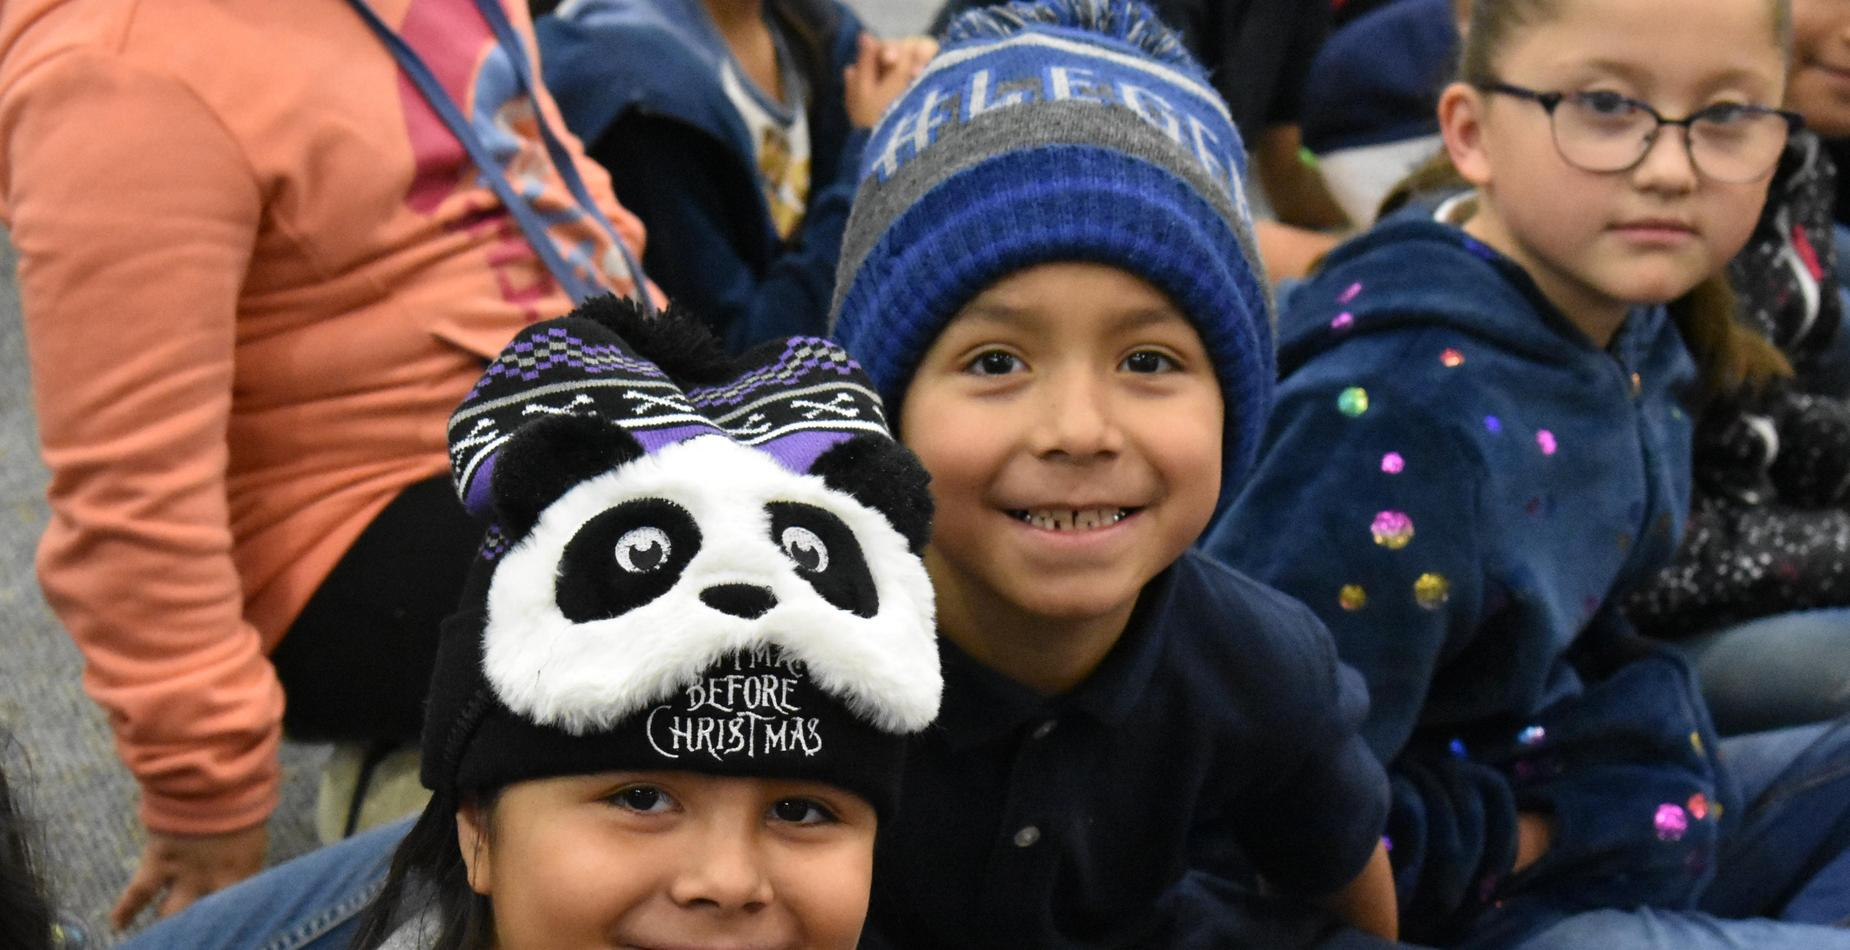 A little girl wearing a panda hat, and a boy wearing a blue stocking hat for hat day.